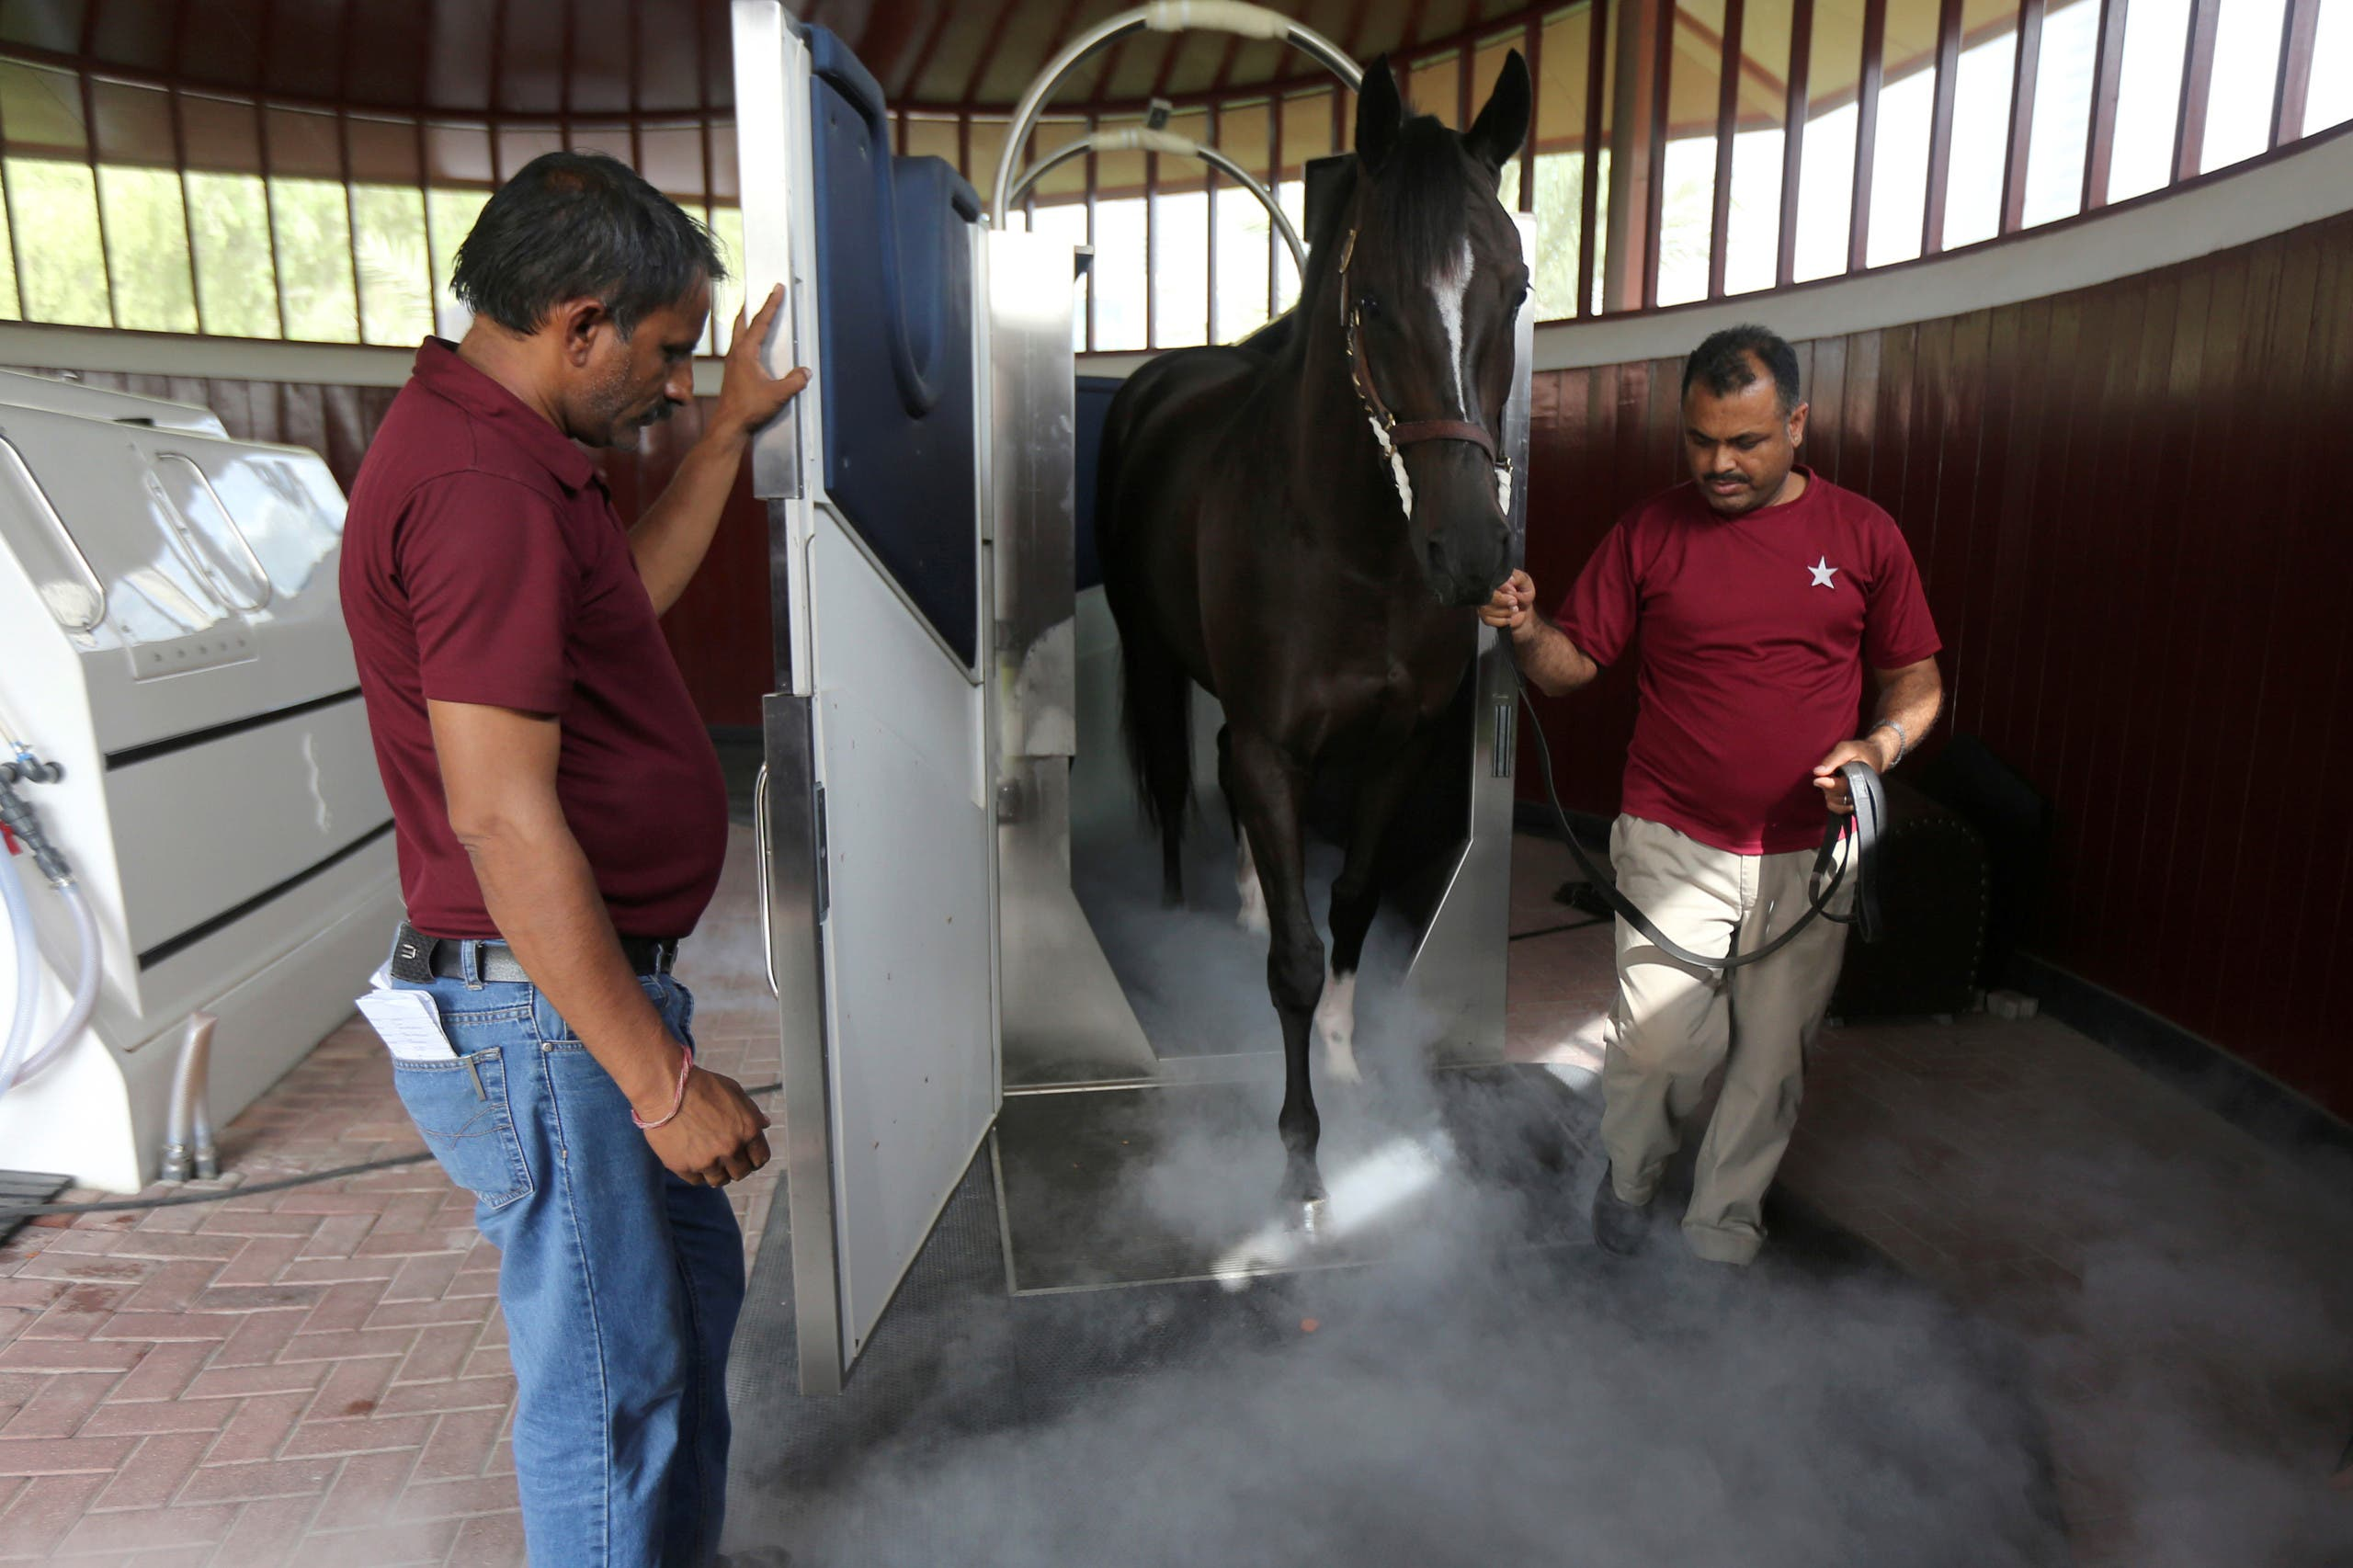 Grooms guide a horse after a cryotherapy session, which surrounds its body in cold nitrogen mist, at the Zabeel Racing Stables in Dubai, UAE August 18, 2019. Picture taken August 18, 2019.(Reuters)